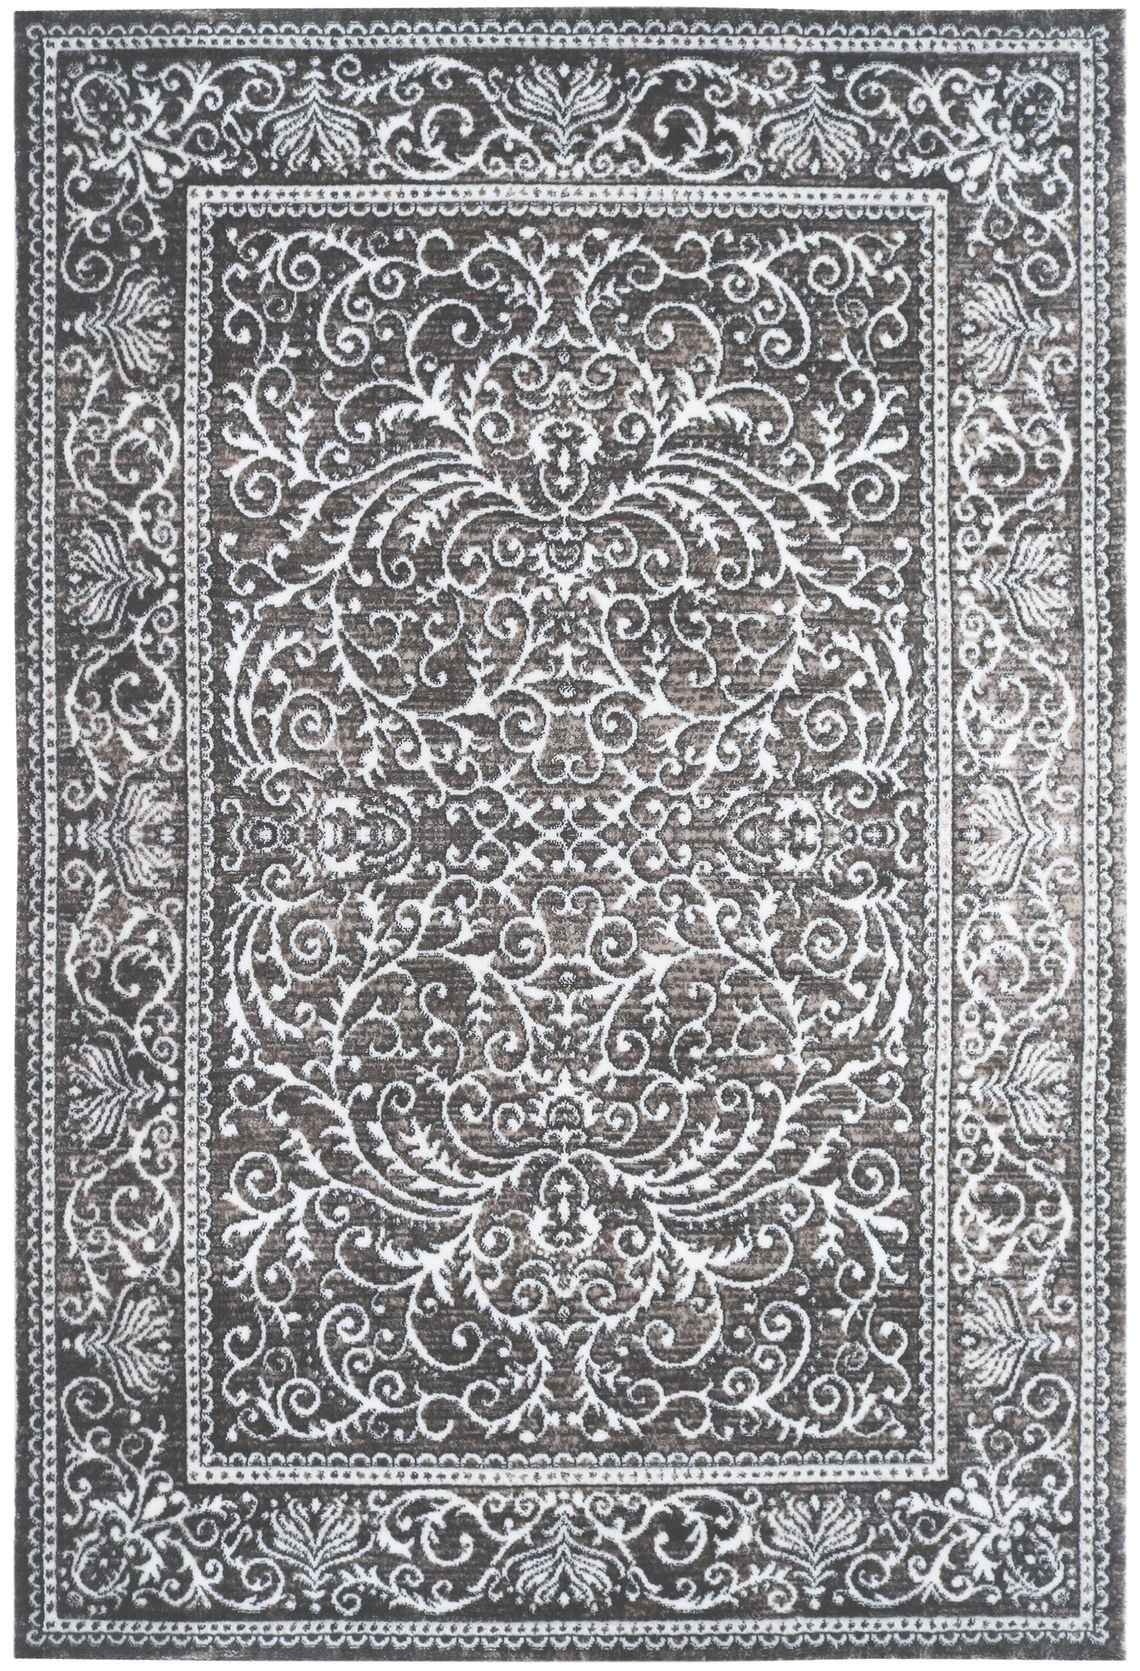 Tapis de salon design en acrylique moderne nevio 12 - Tapis de salon but ...